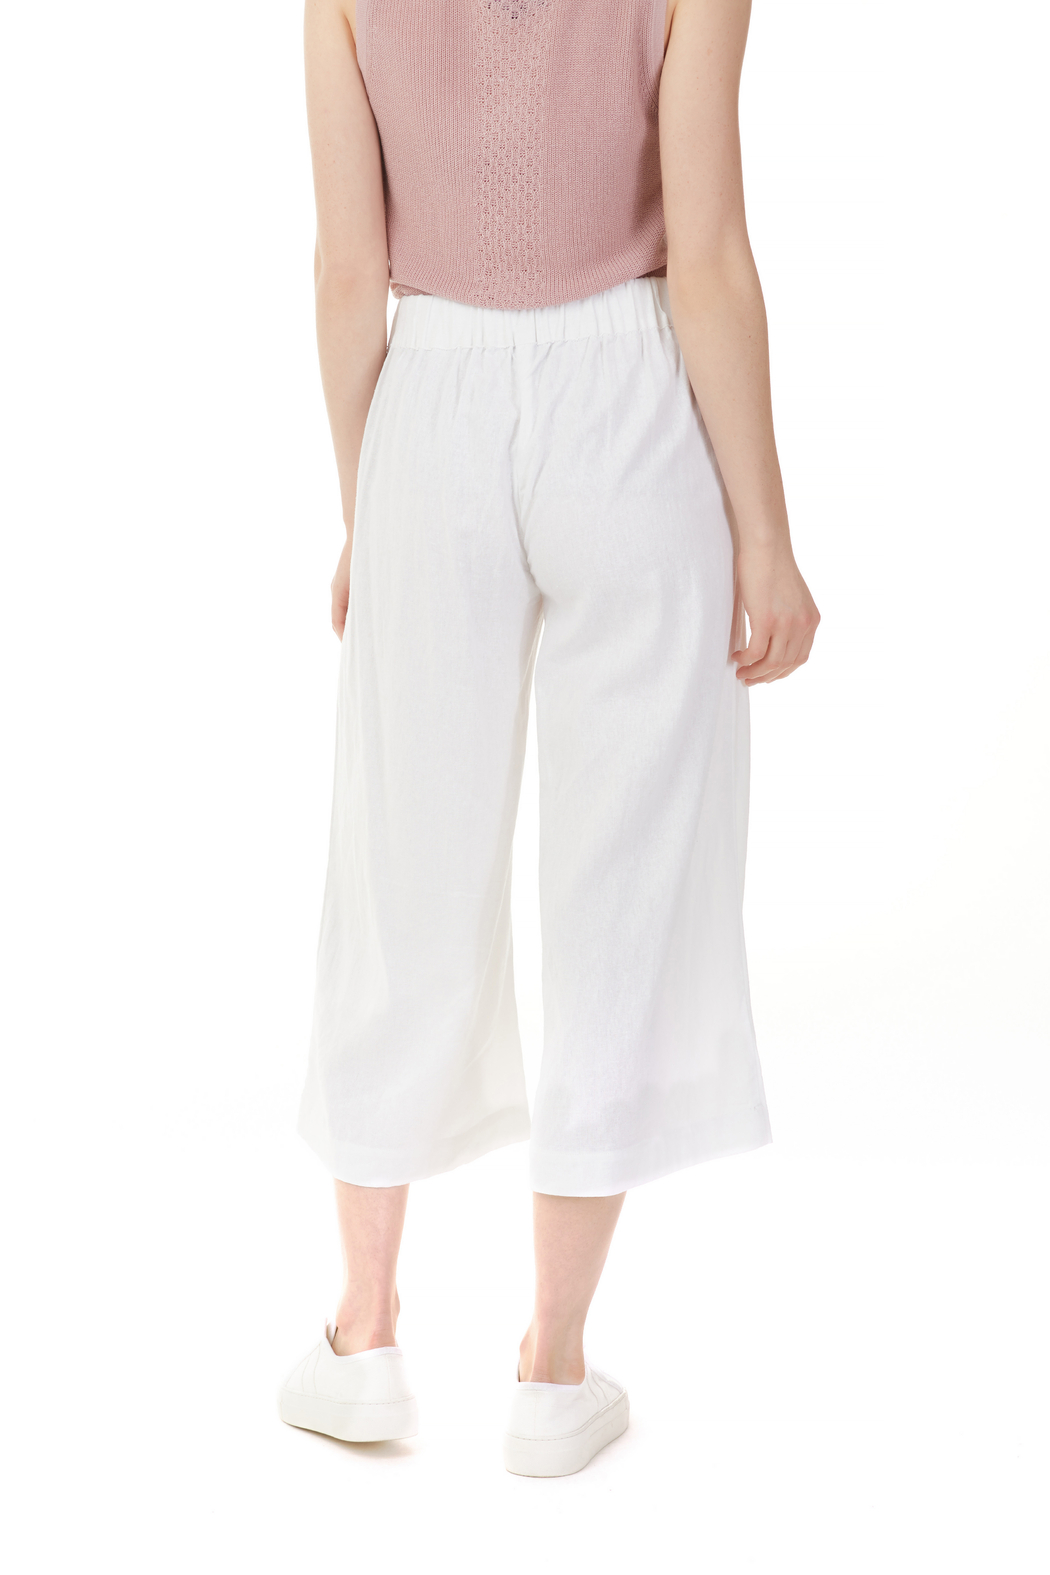 Charlie B. Linen Blend Palazzo Pant - Side Cropped Image